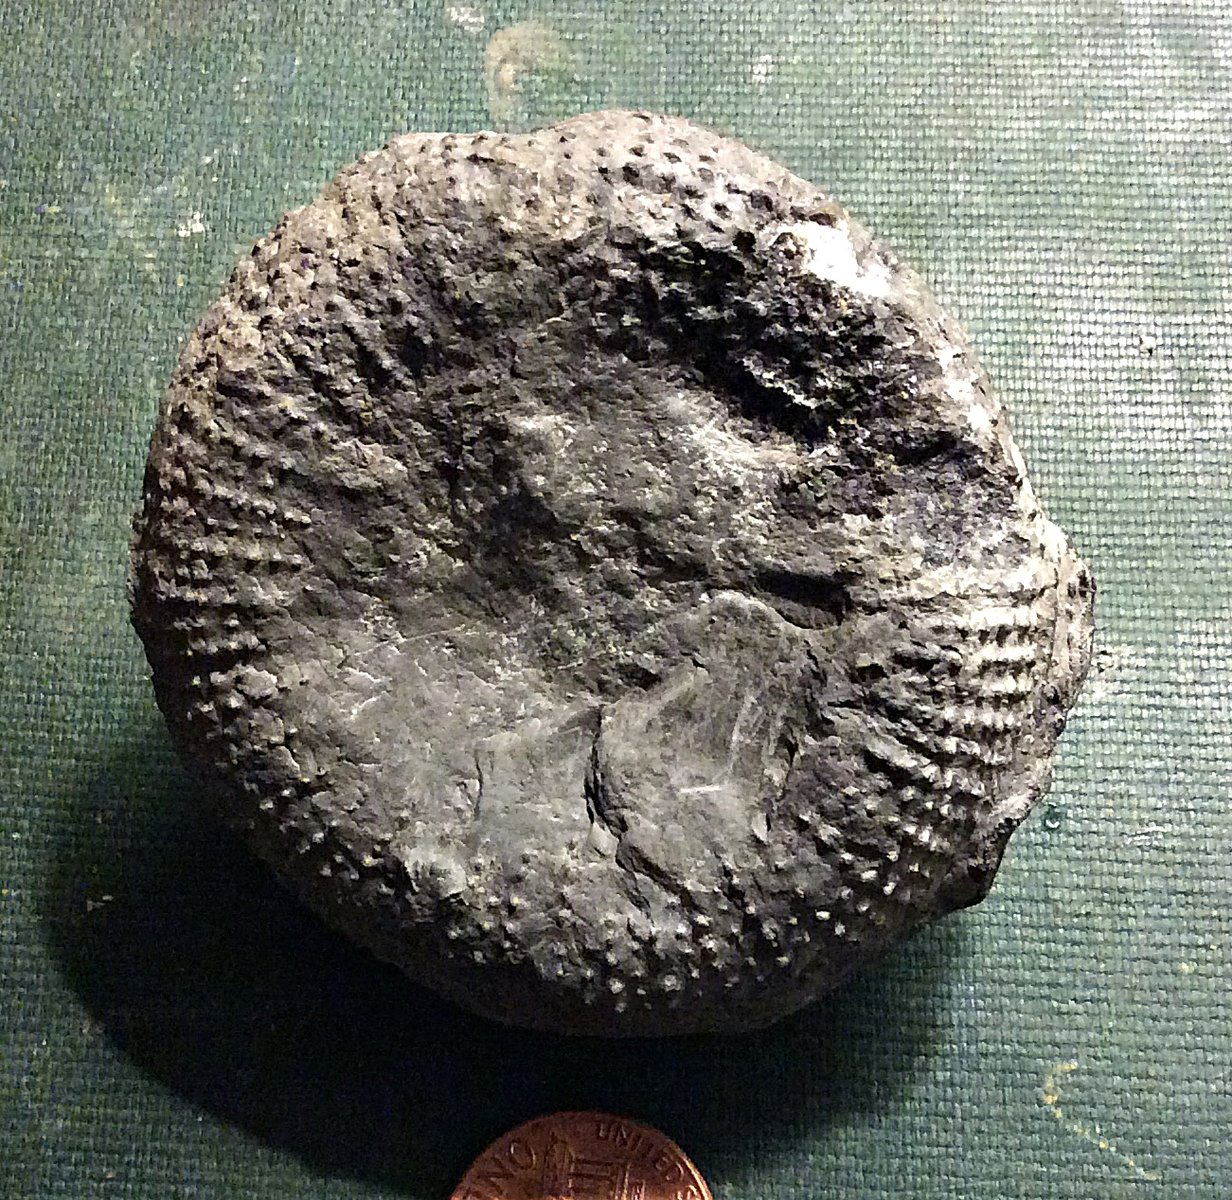 Middle Devonian Rugose Coral from Genesee County, N.Y.